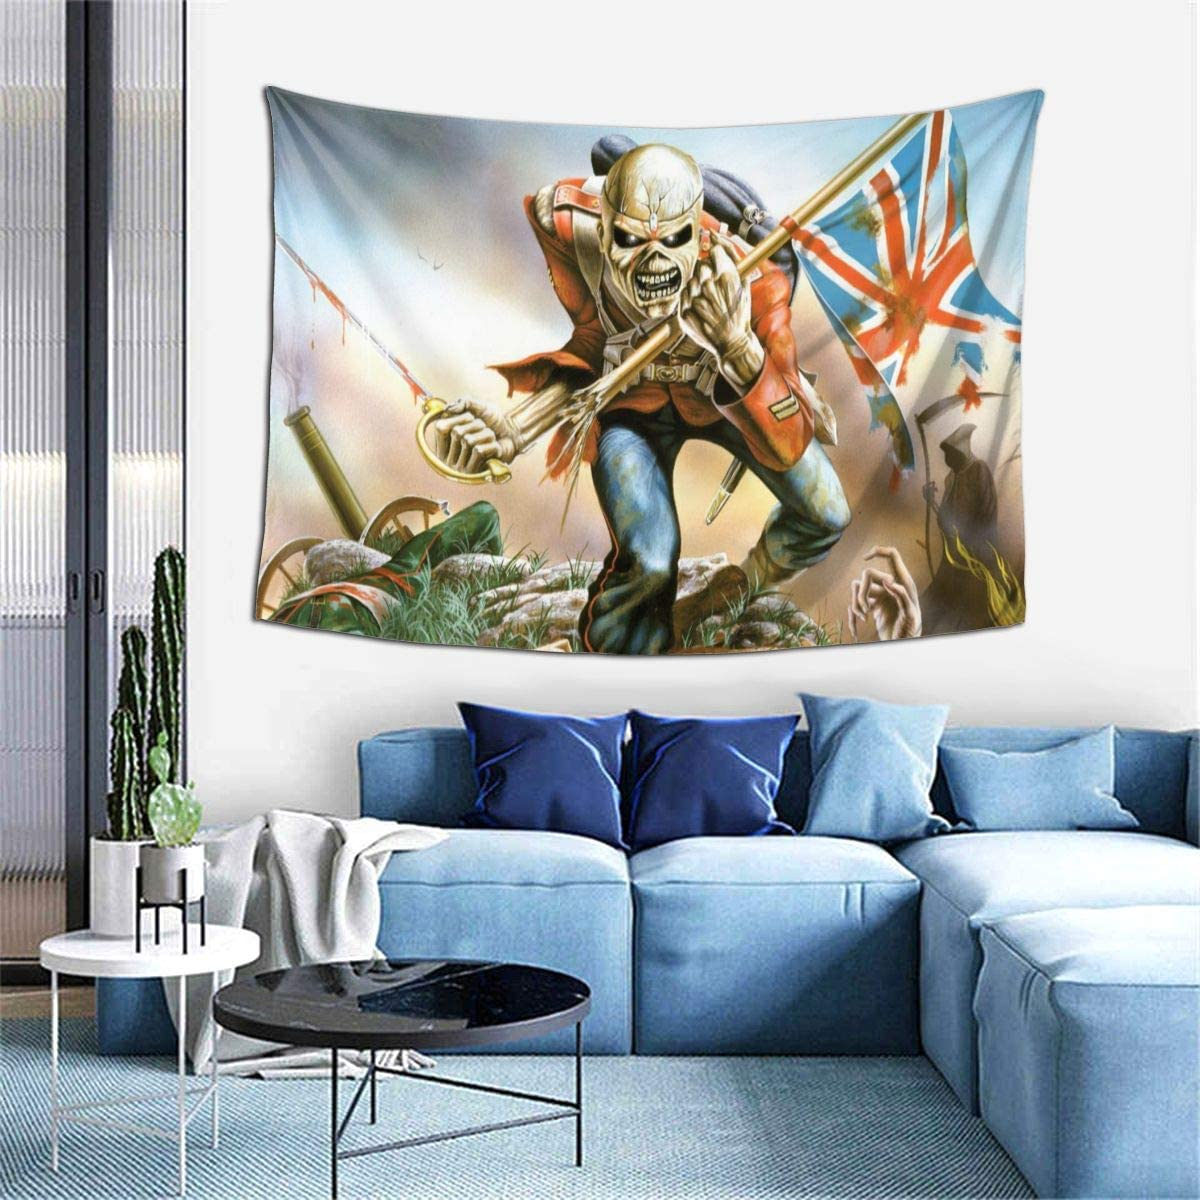 Sadie Mae Ir-on Mai-den Tapestry Beach Blanket Wall Hanging Tapestries Art For Living Room Collage Dorm Bedroom Inhouse Home Decor 60x40 Inch